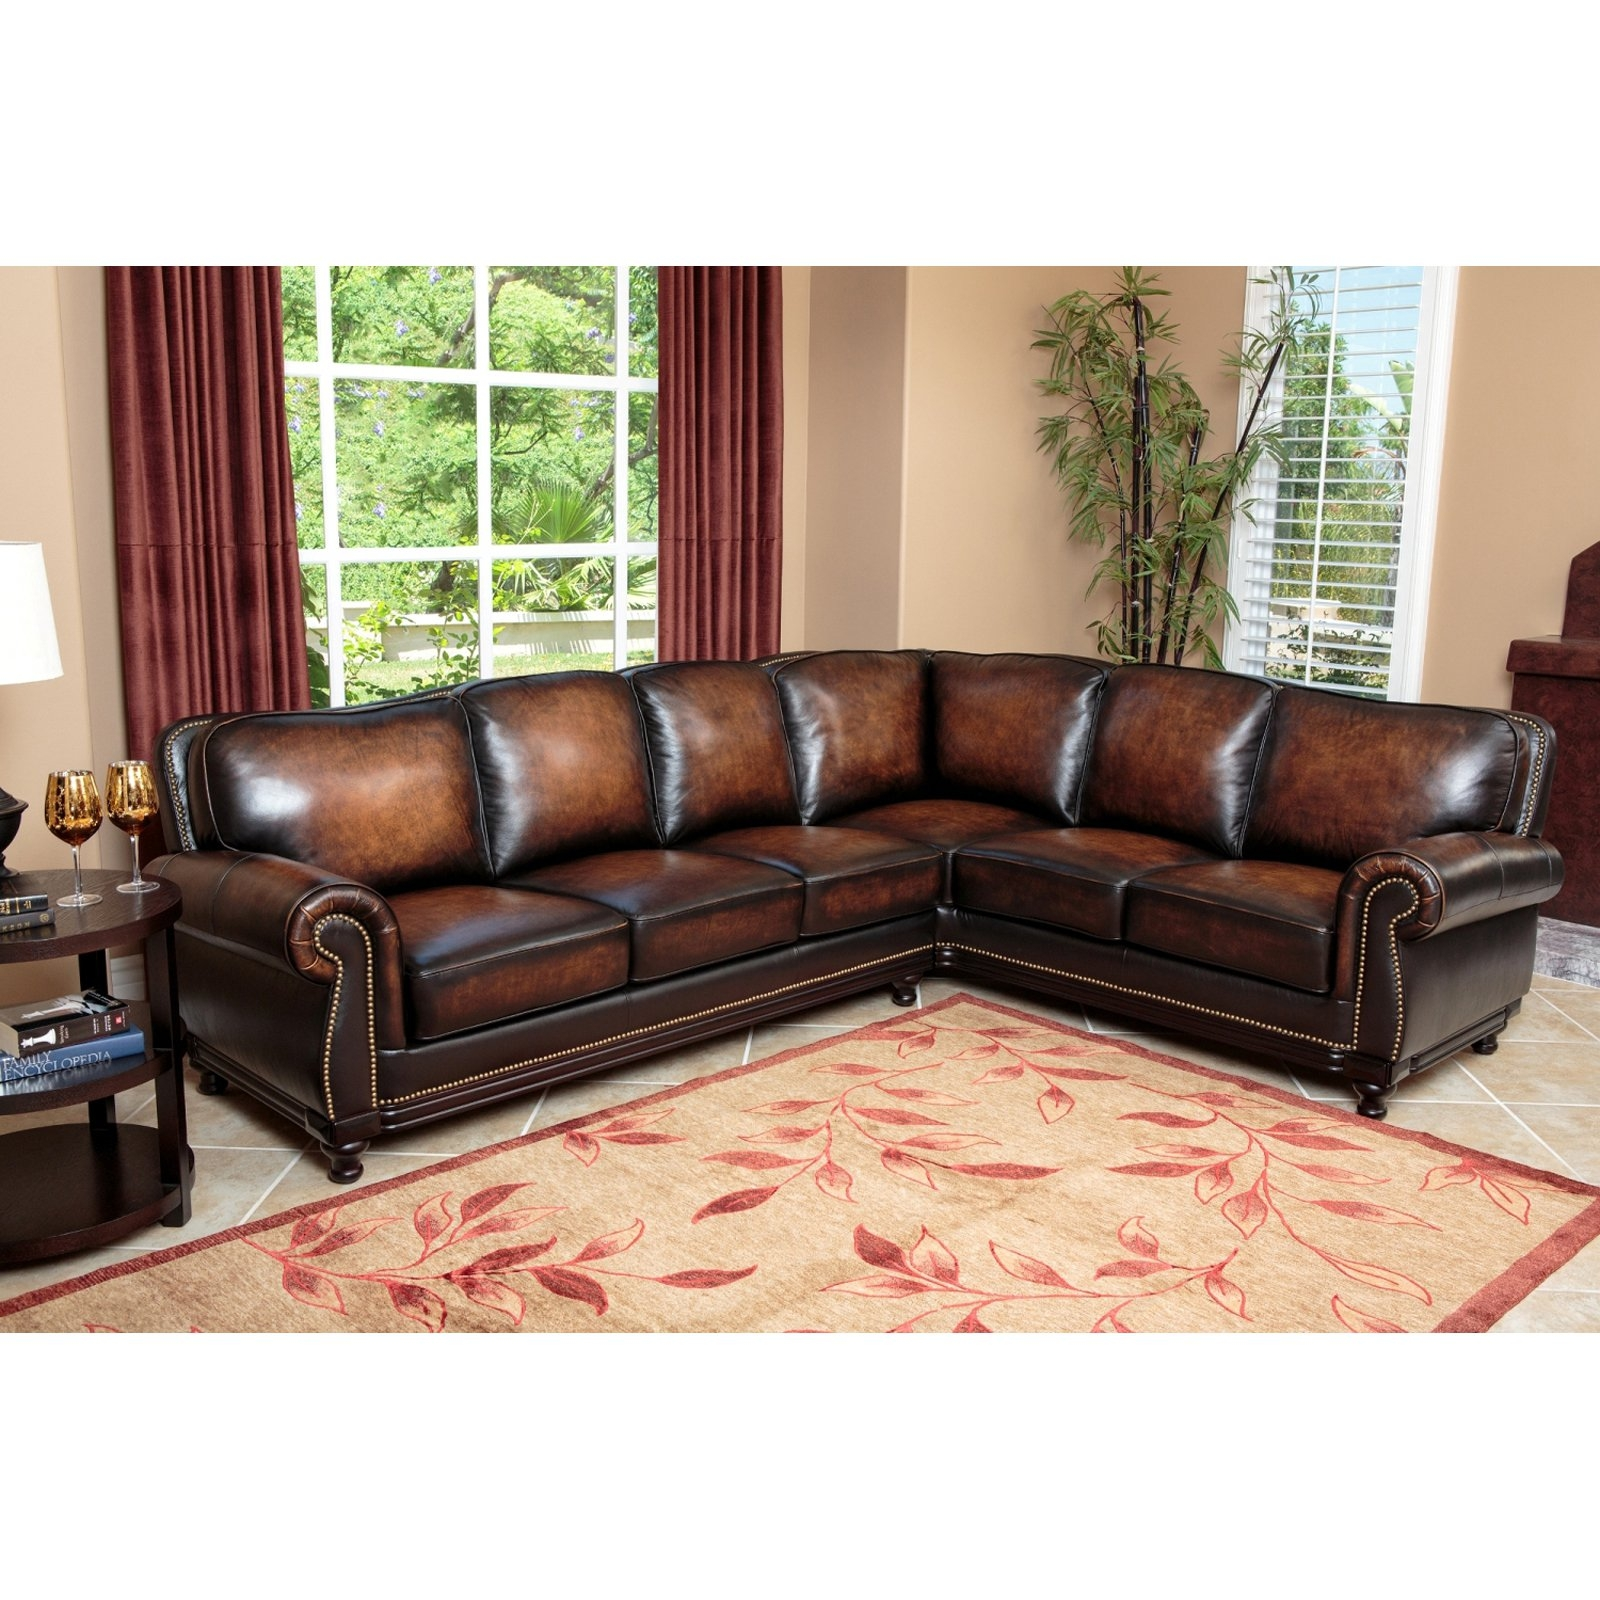 Abson Nizza Hand Rubbed Leather Sectional Sofa Brown Throughout Abbyson Sectional Sofa (Image 5 of 15)